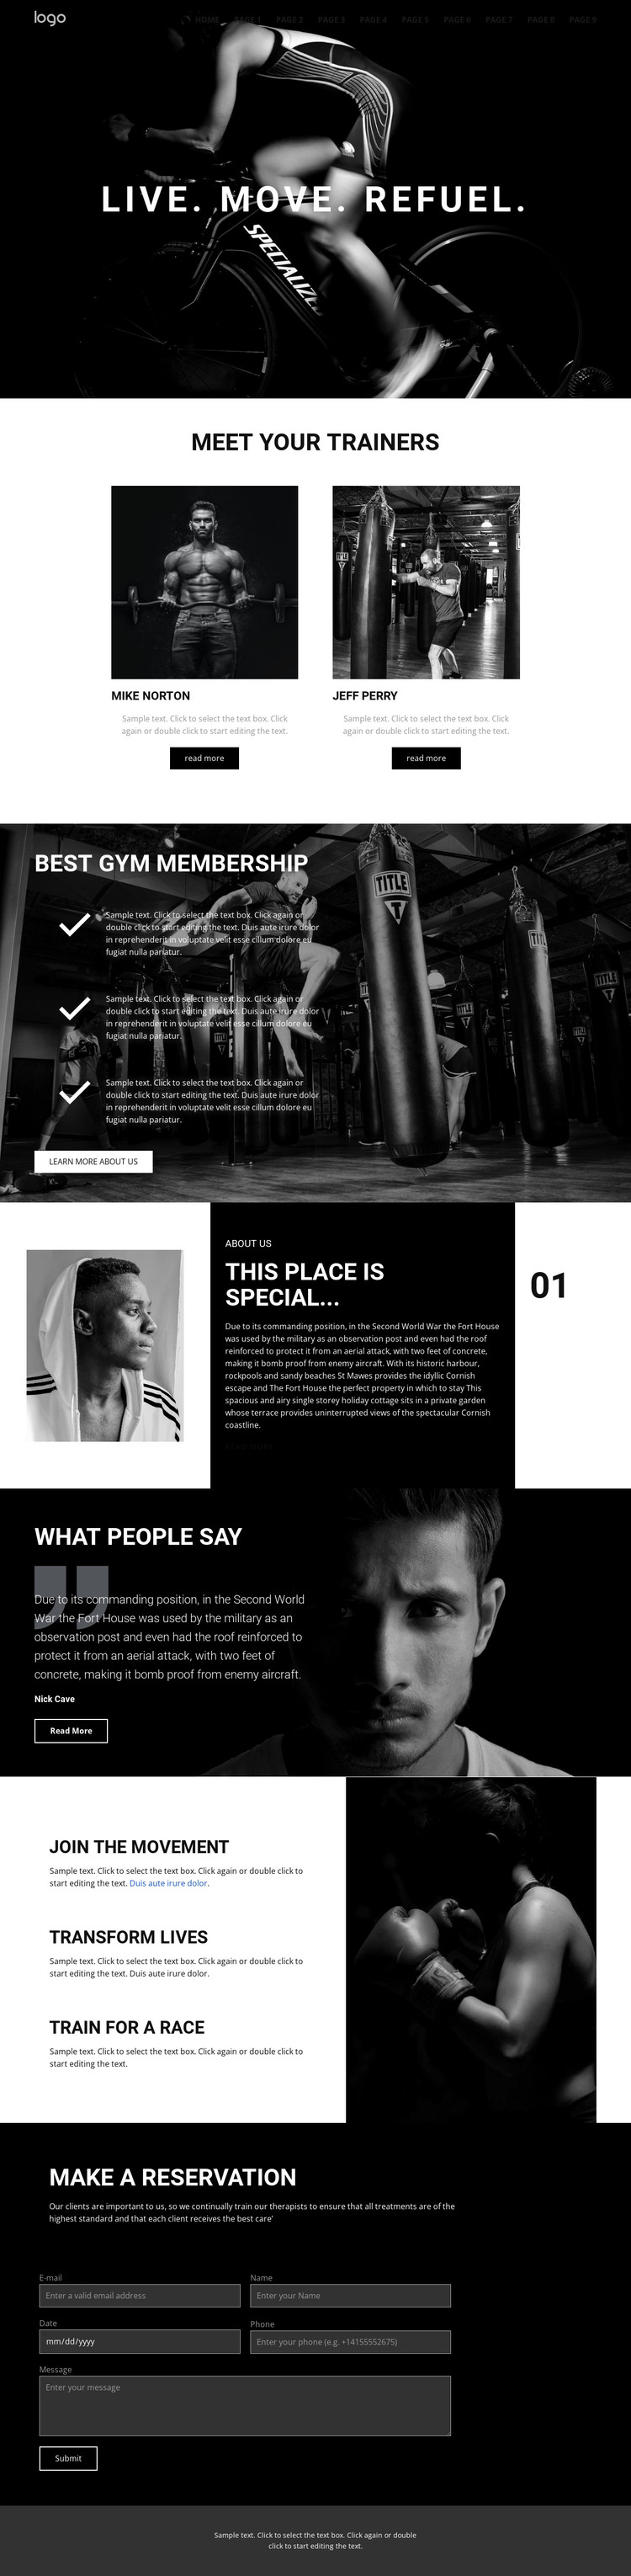 Refuel at power gym HTML Template